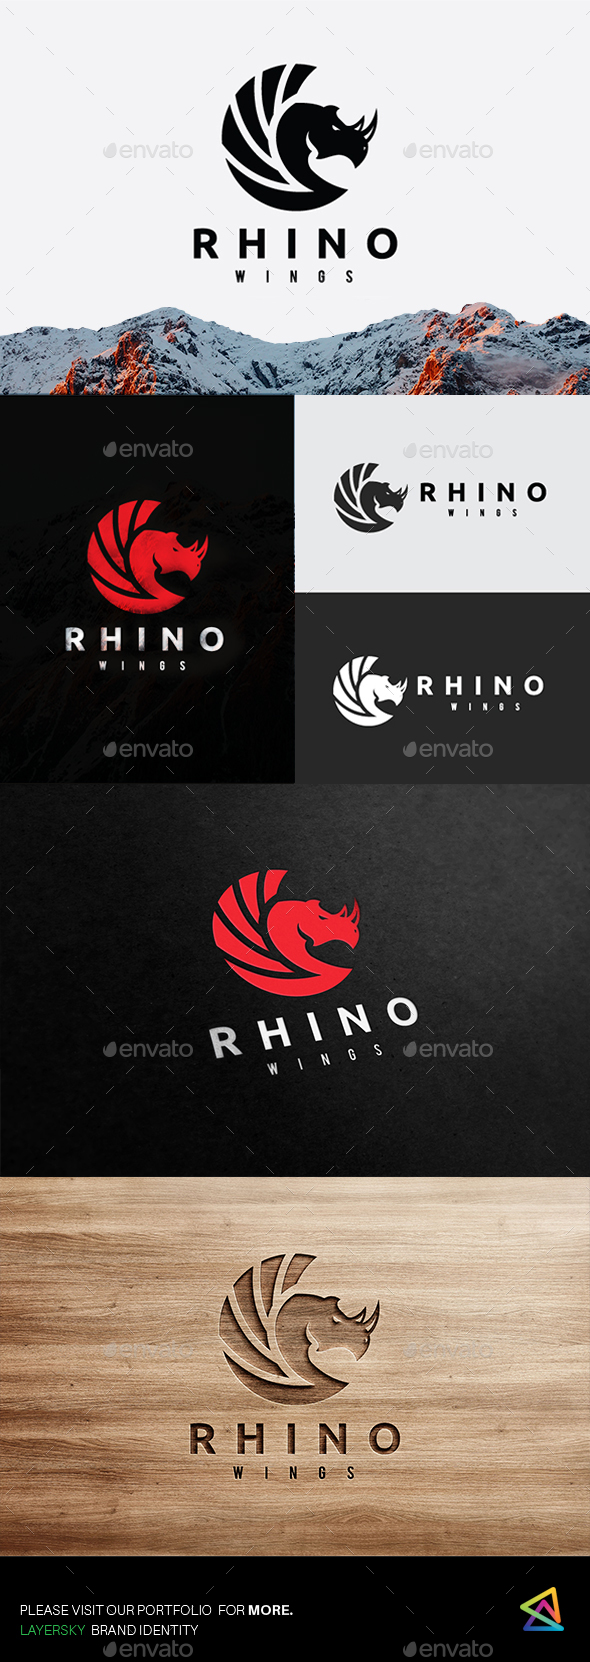 Rhino Wing - Animals Logo Templates